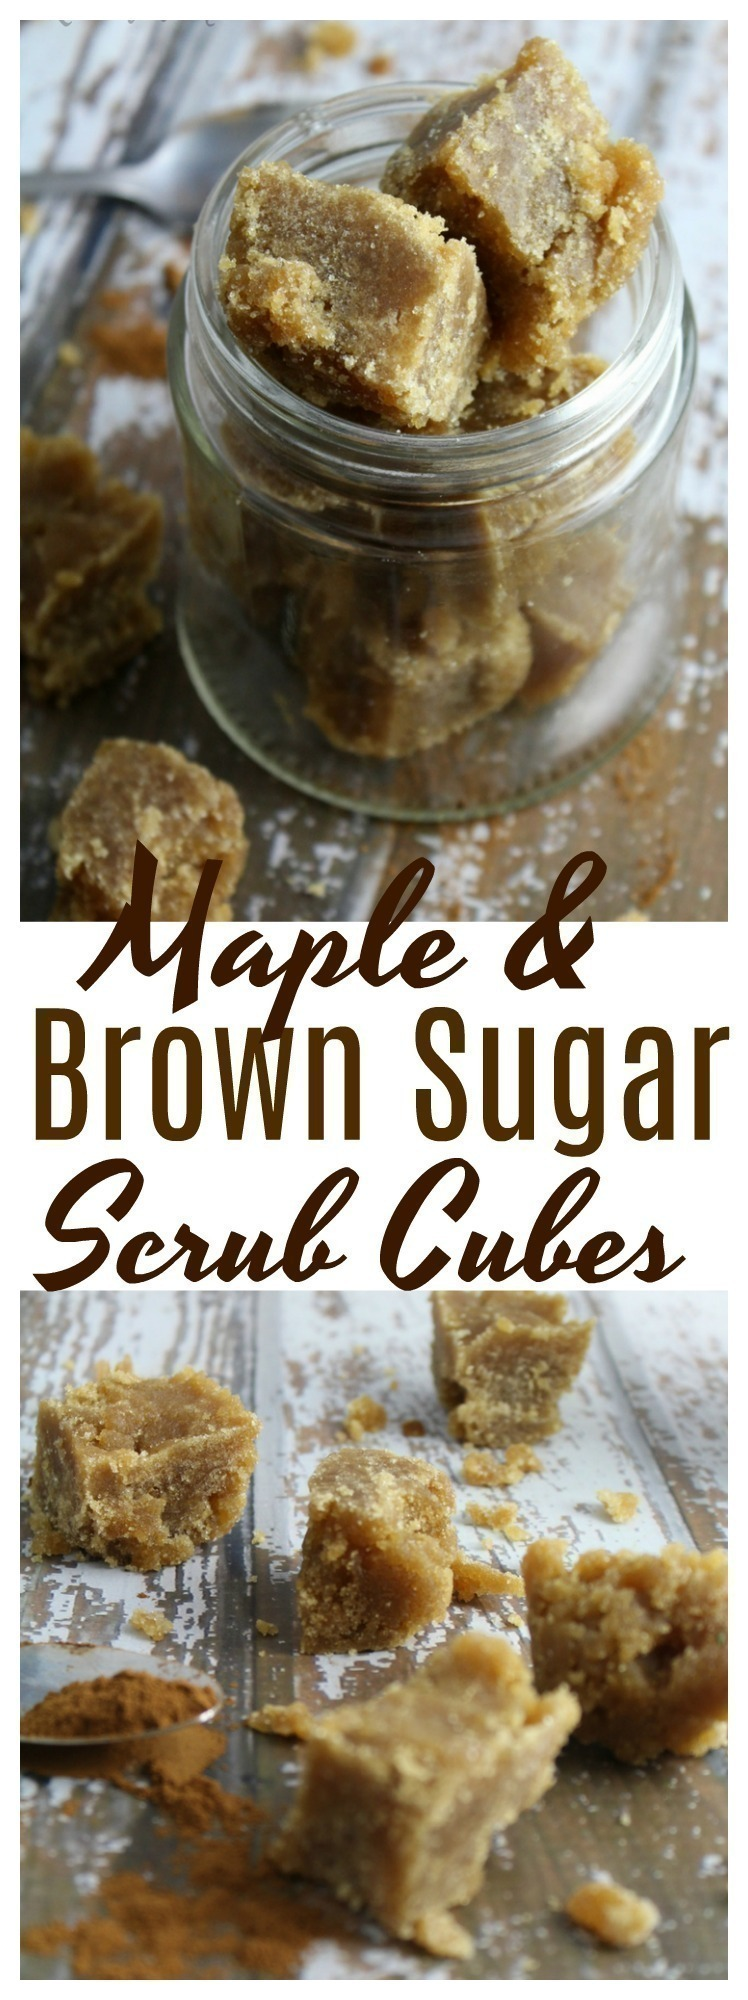 These Maple and Brown Sugar Scrub Cubes are wonderful for exfoliating dull, dry skin, easy to make, and are great to give as gifts!